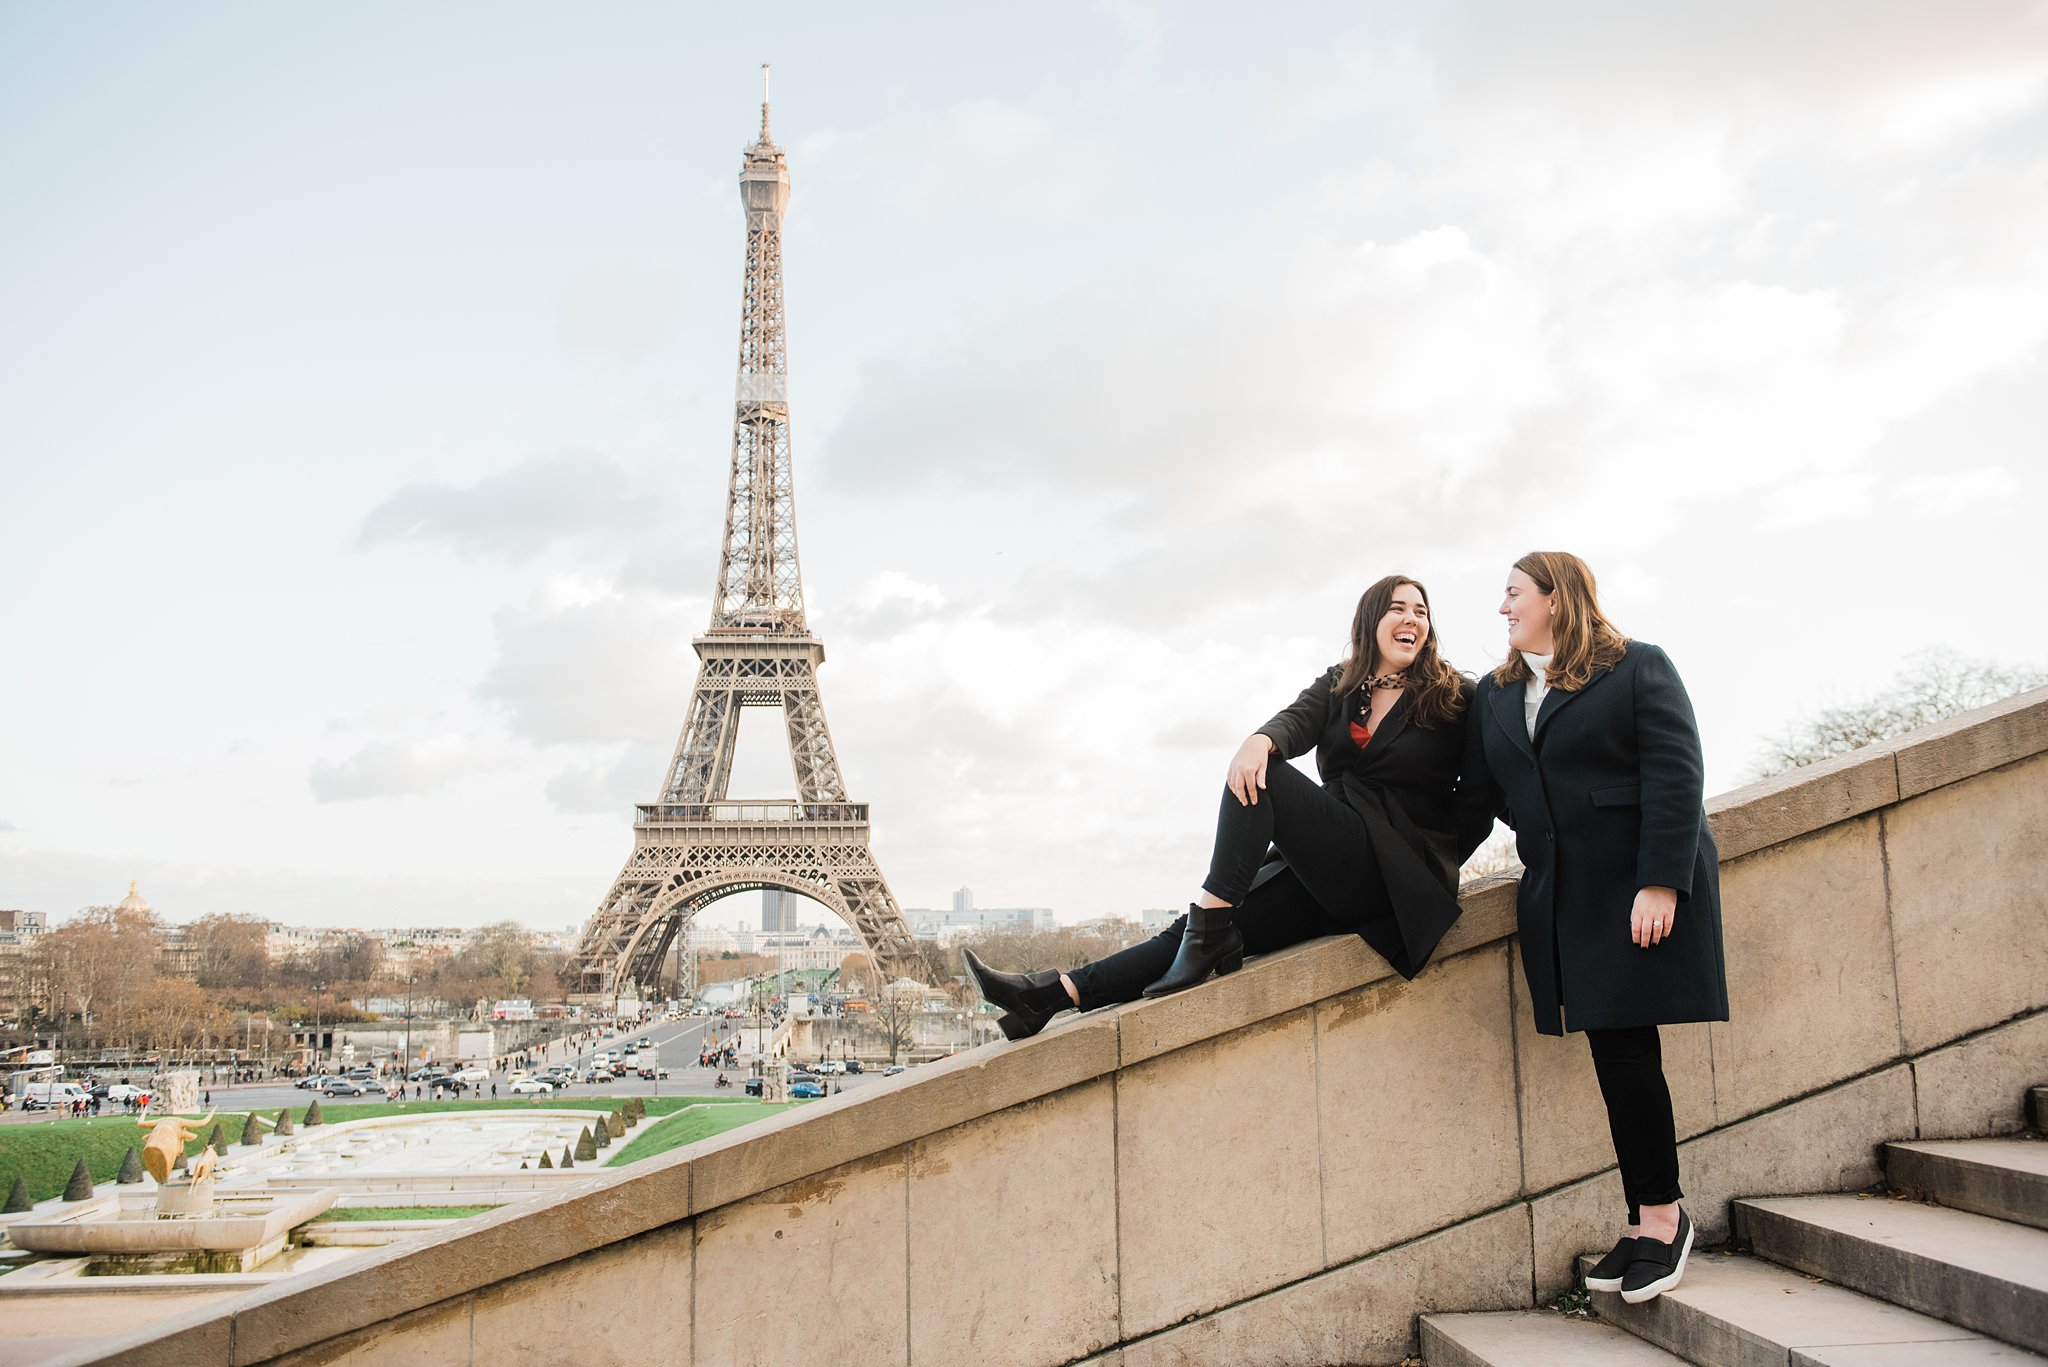 Two sisters laughing on staircase in Trocadero with the Eiffel Tower in the background, during a winter photo shoot in Paris they did as a study abroad activity and Christmas gift